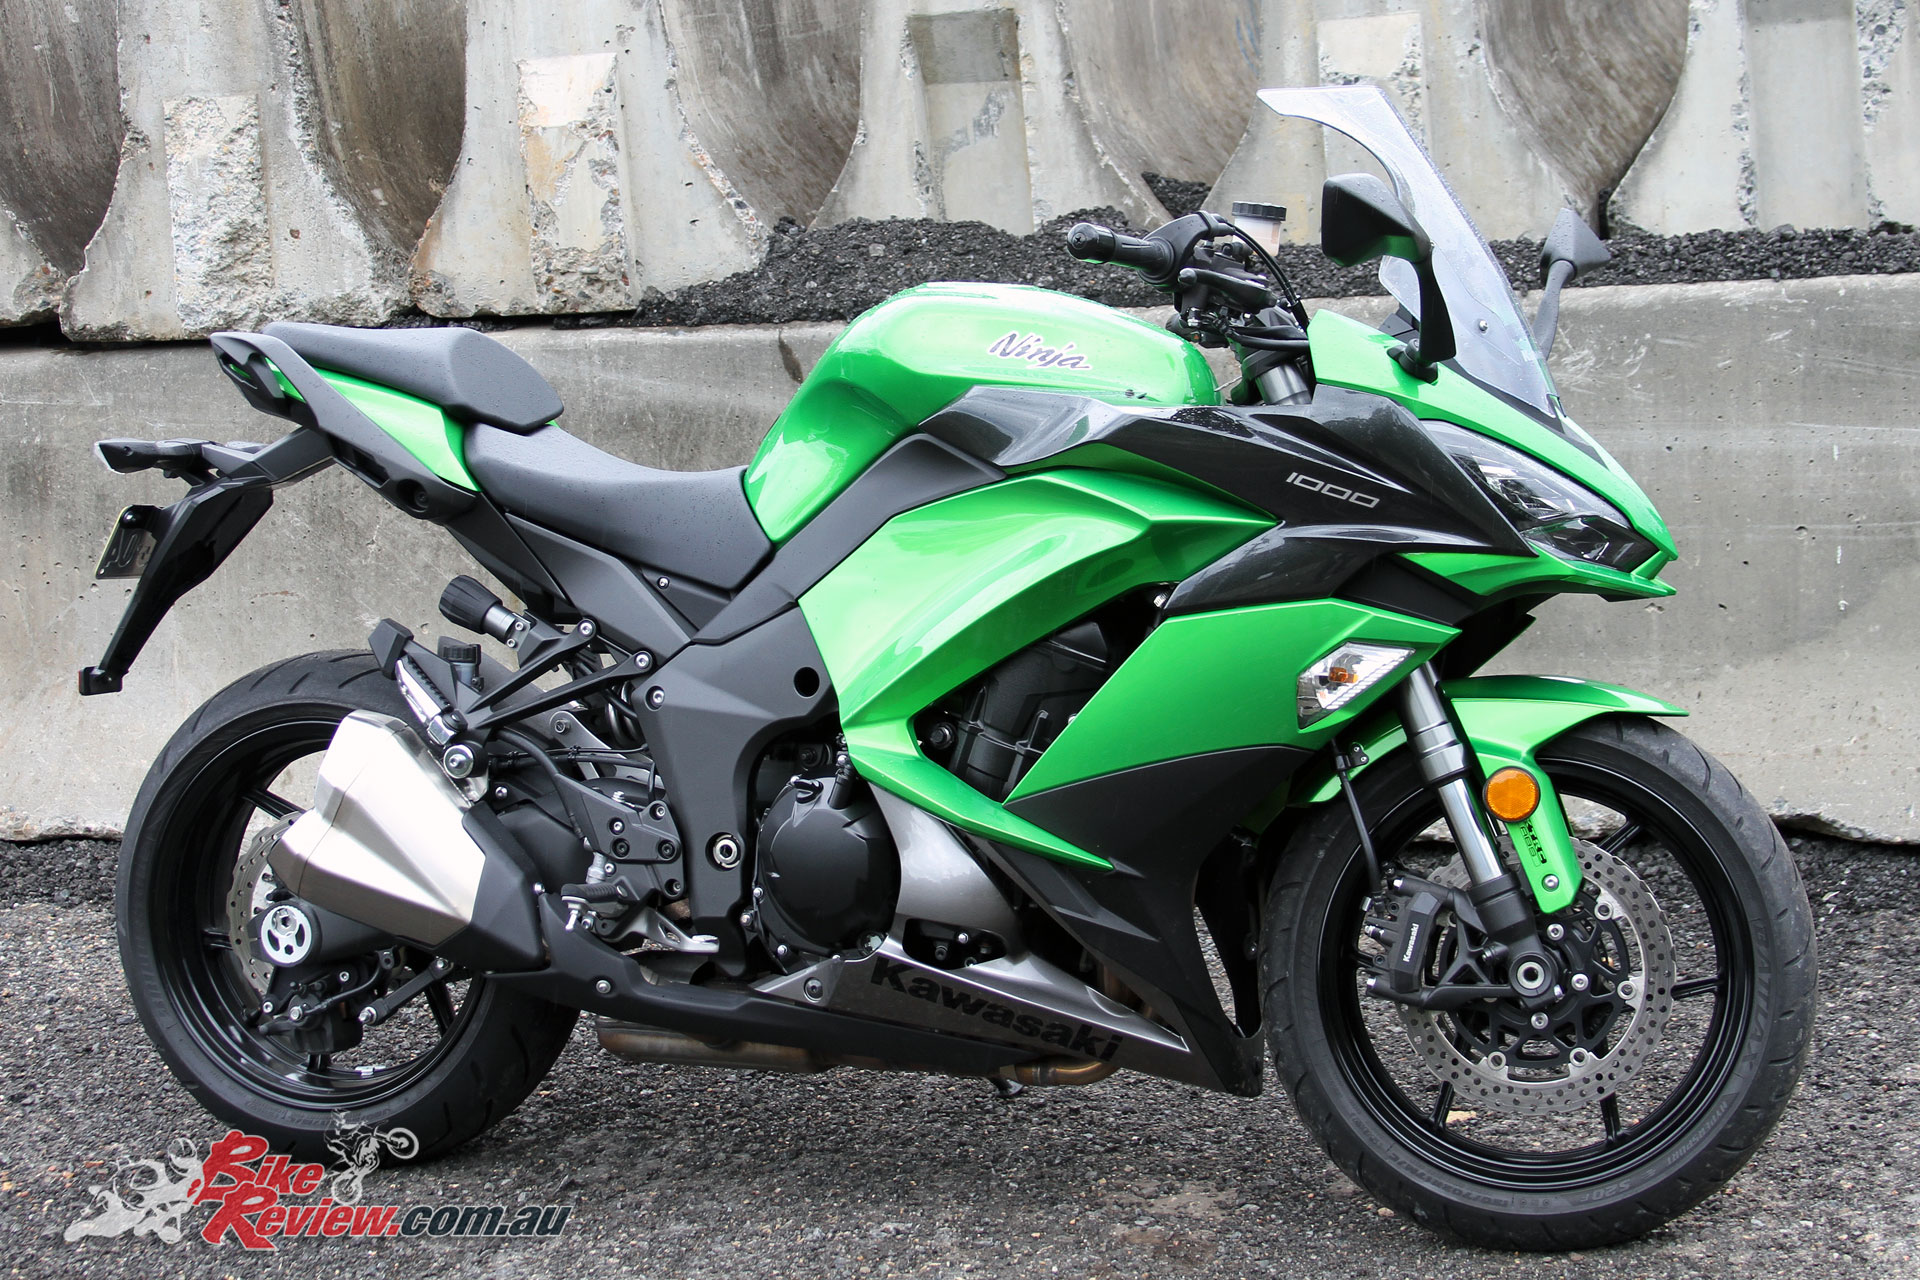 Kawasaki Ninja Review